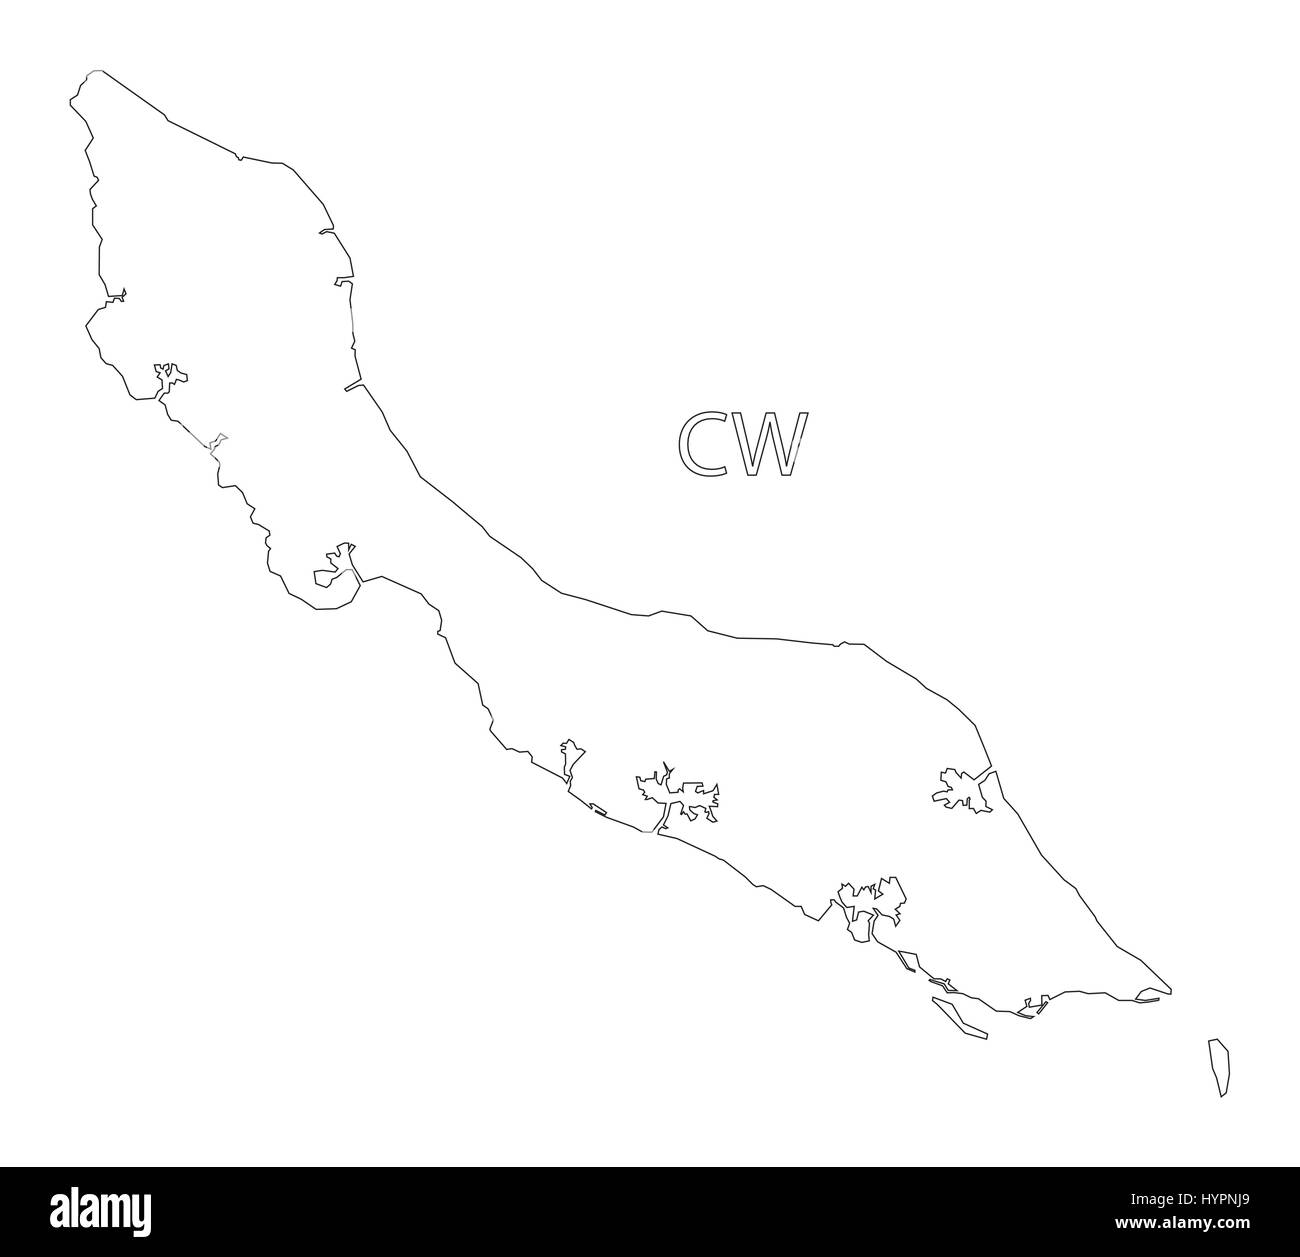 Curacao outline silhouette map illustration - Stock Vector